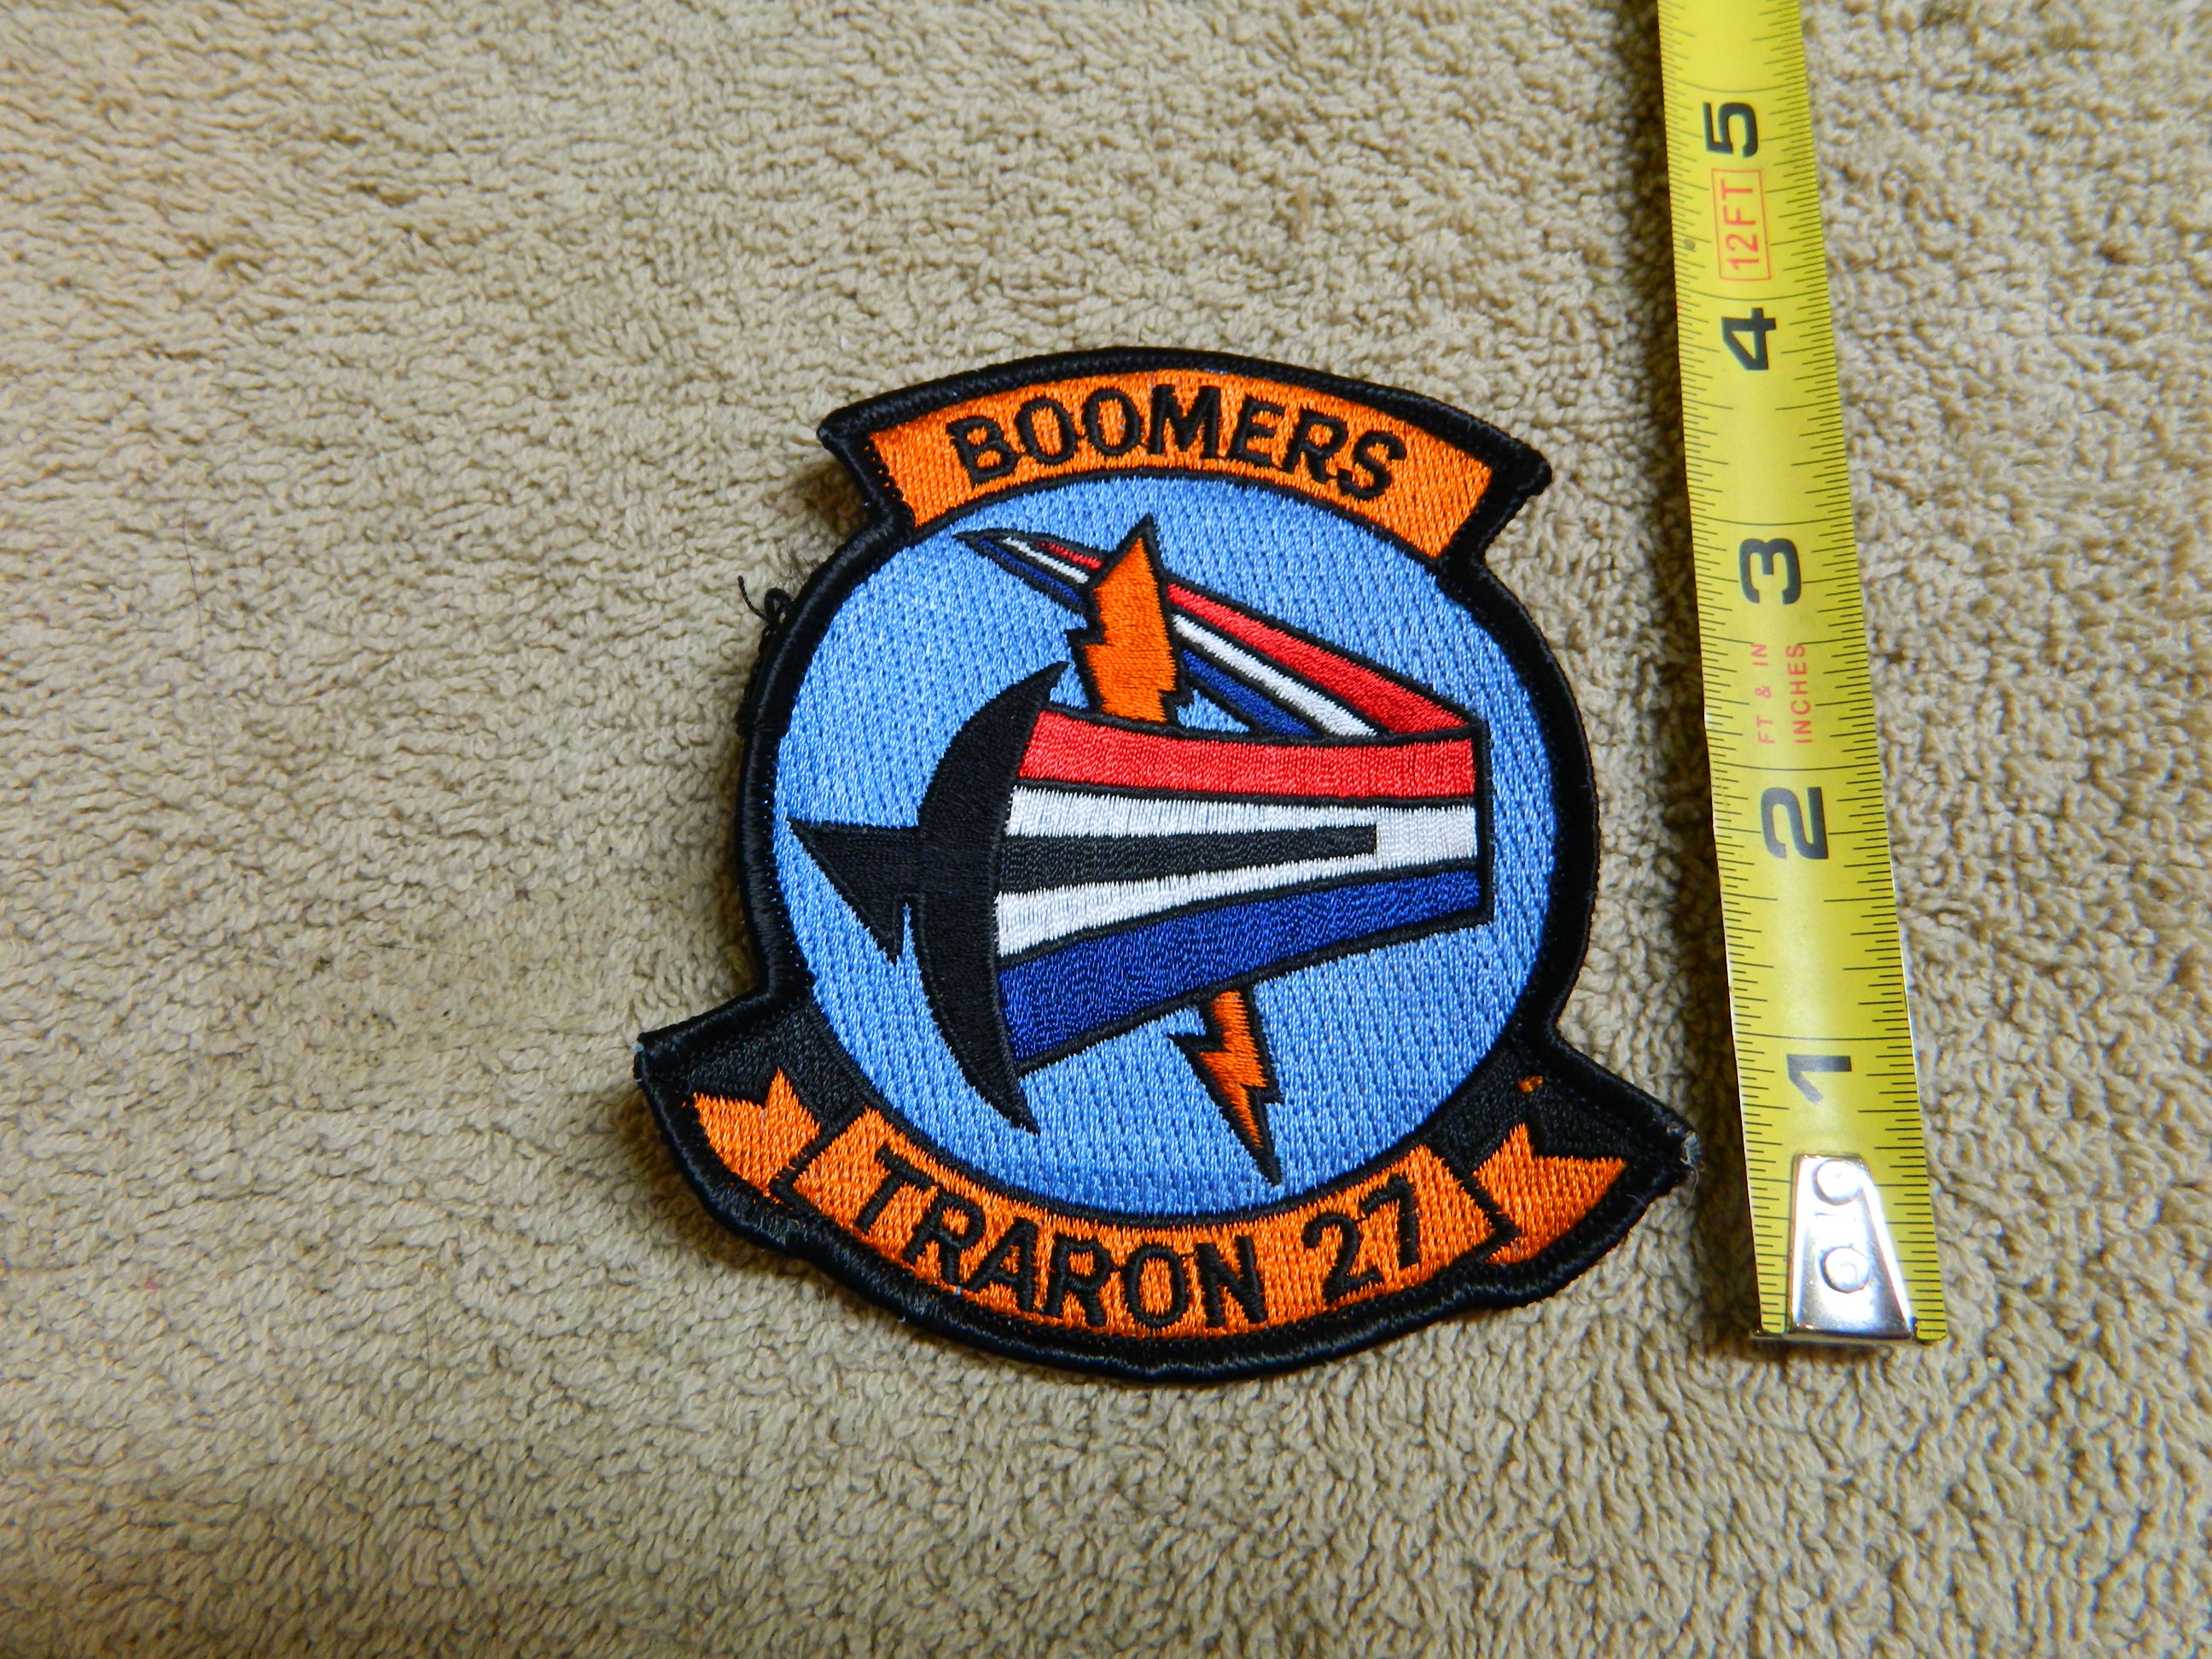 TRARON 27- BOOMERS- Color Patch